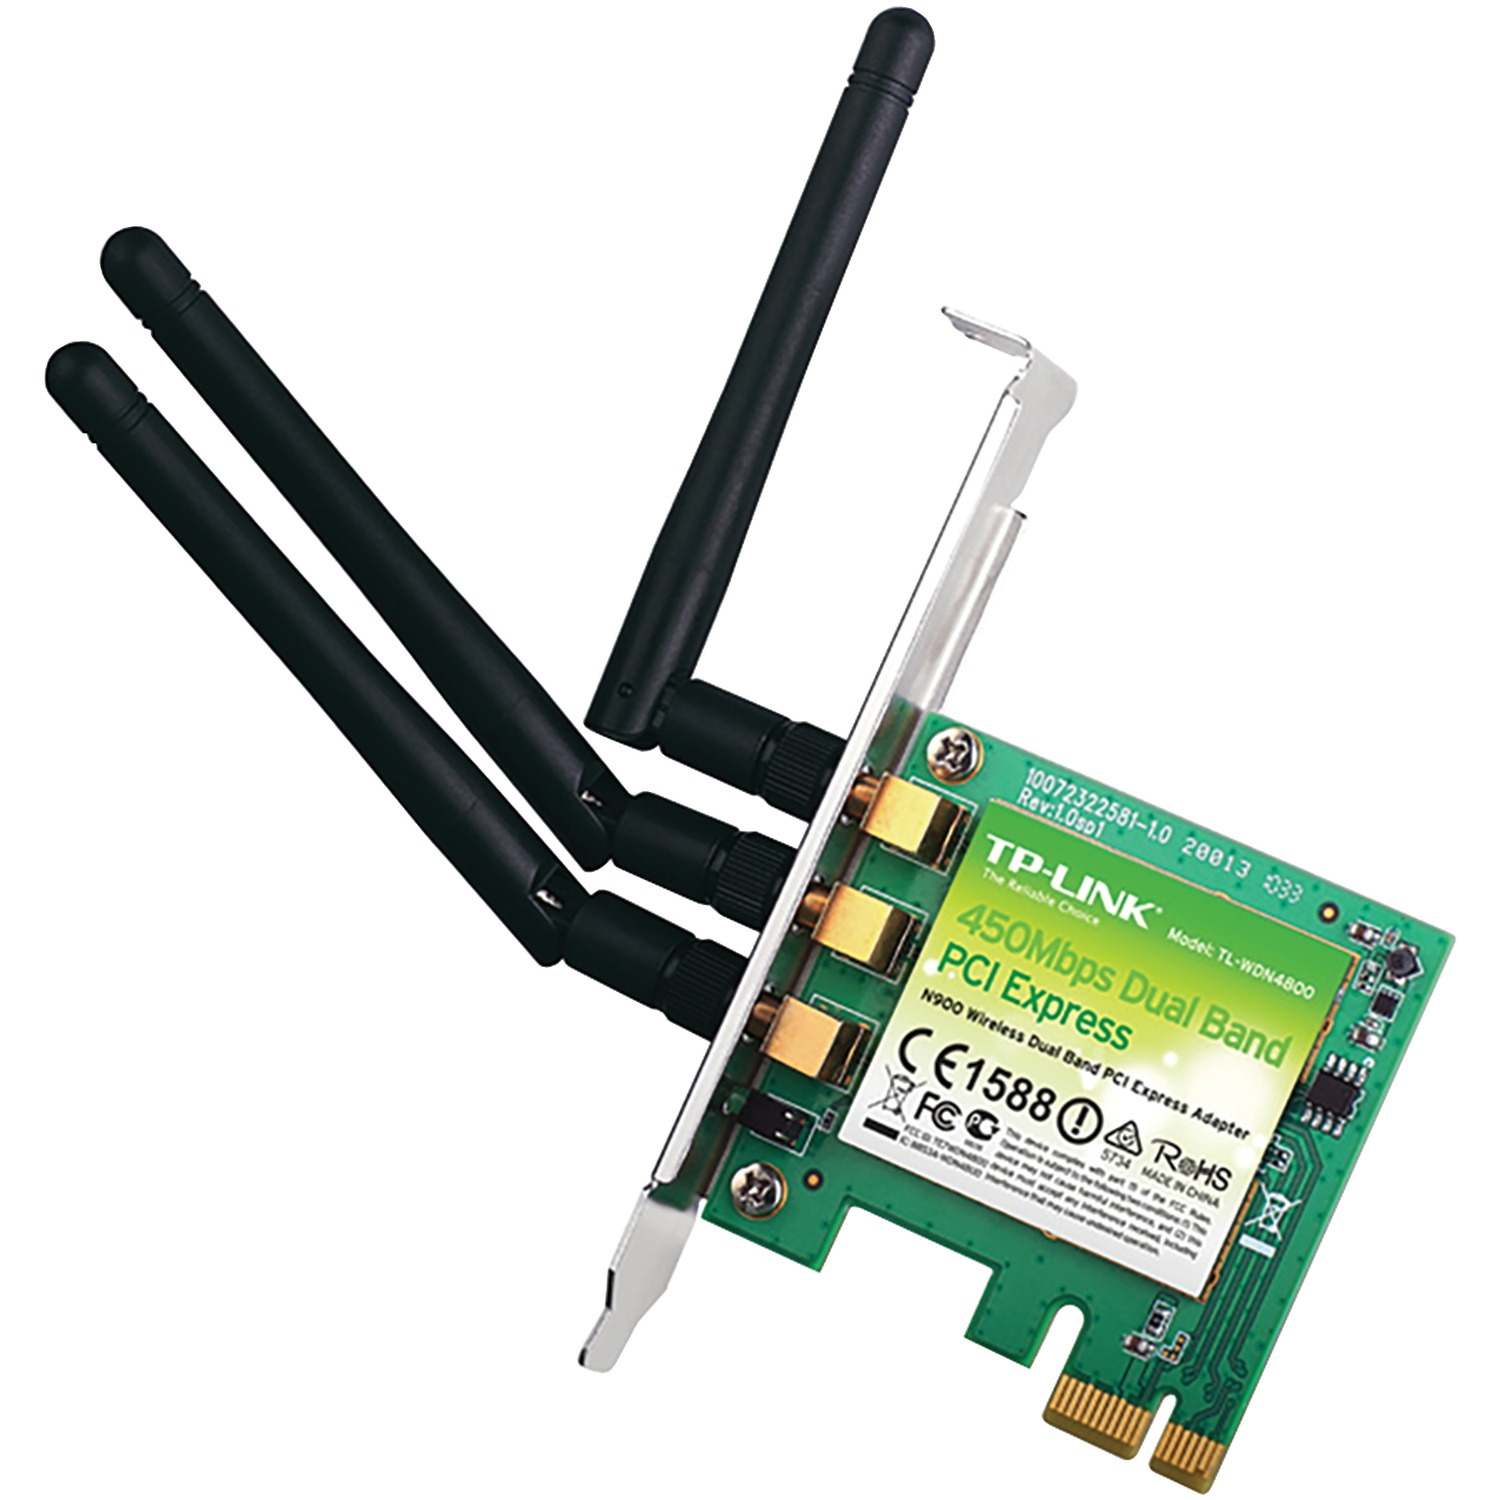 Tp-Link TL-WDN4800 900mbps Wireless Dual-Band Pci Express Adapter